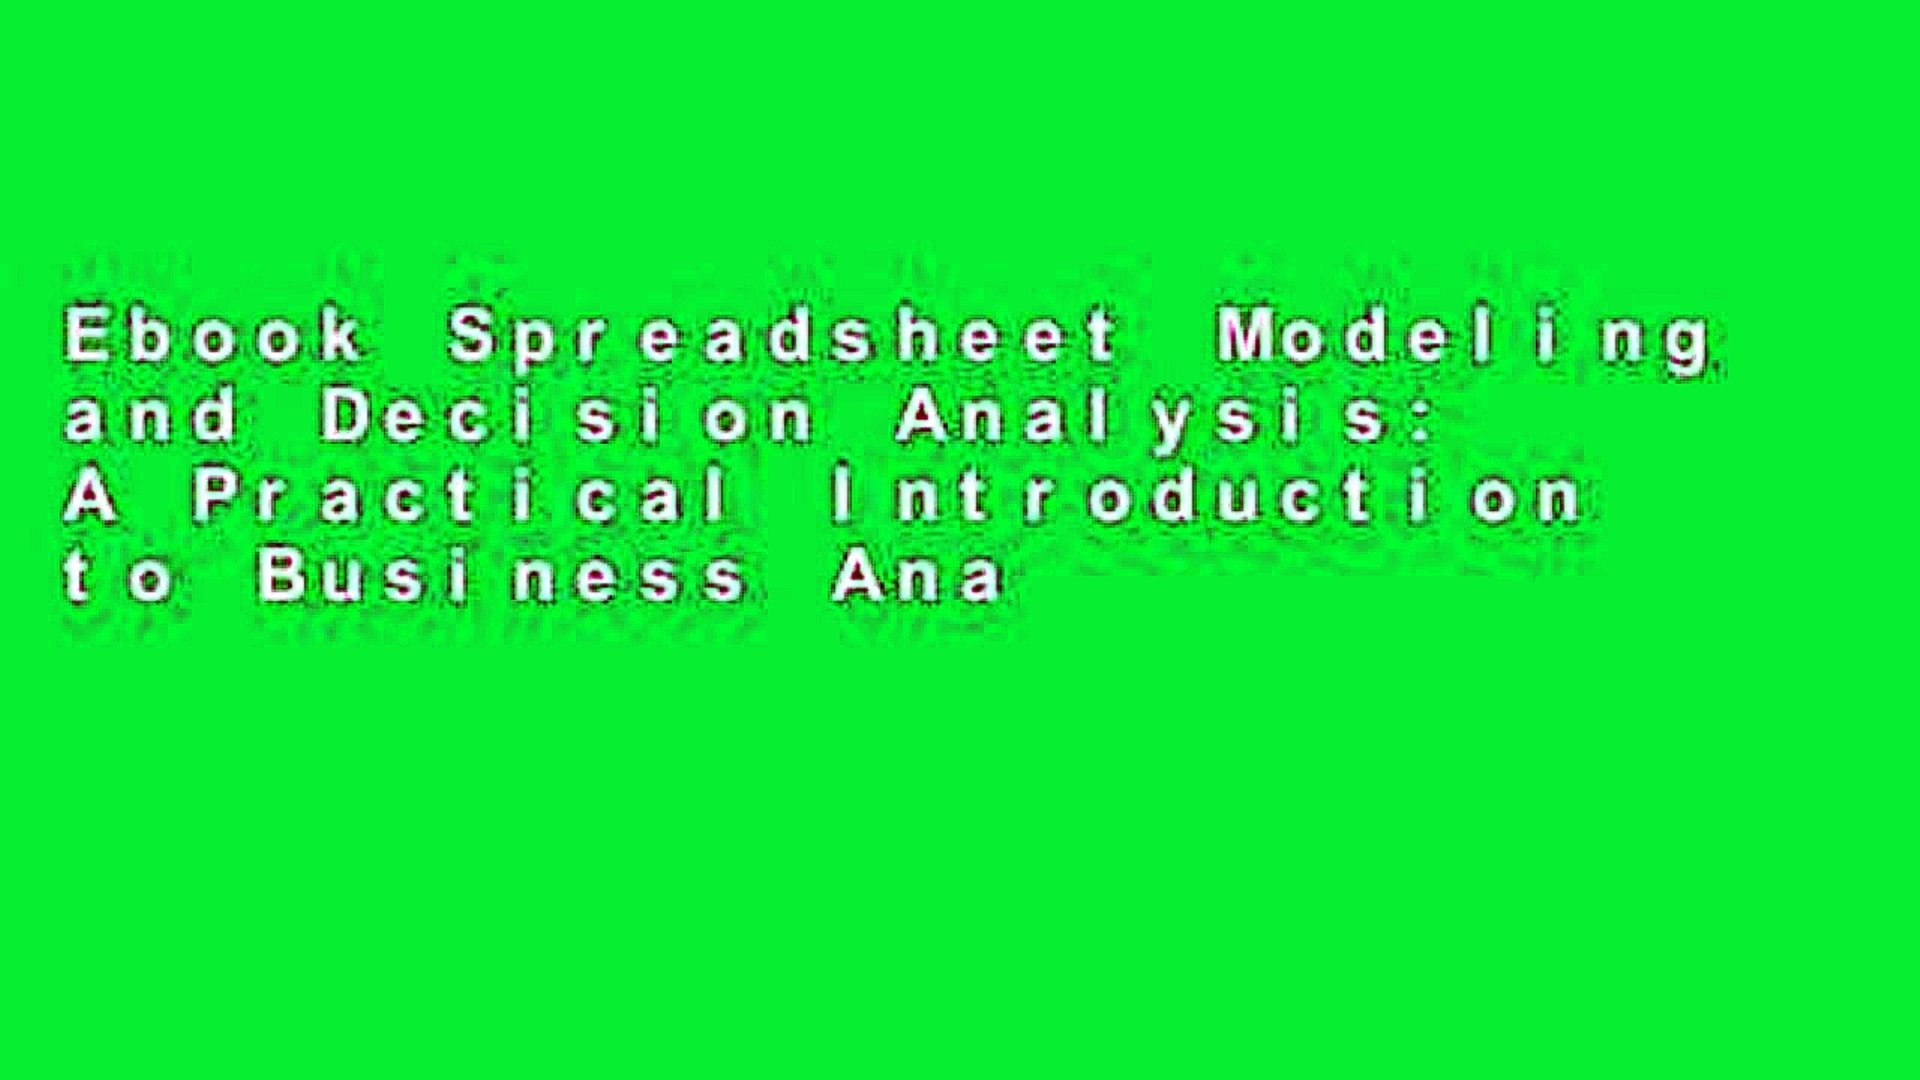 Spreadsheet Modeling And Decision Analysis Ebook Pertaining To Ebook Spreadsheet Modeling And Decision Analysis: A Practical